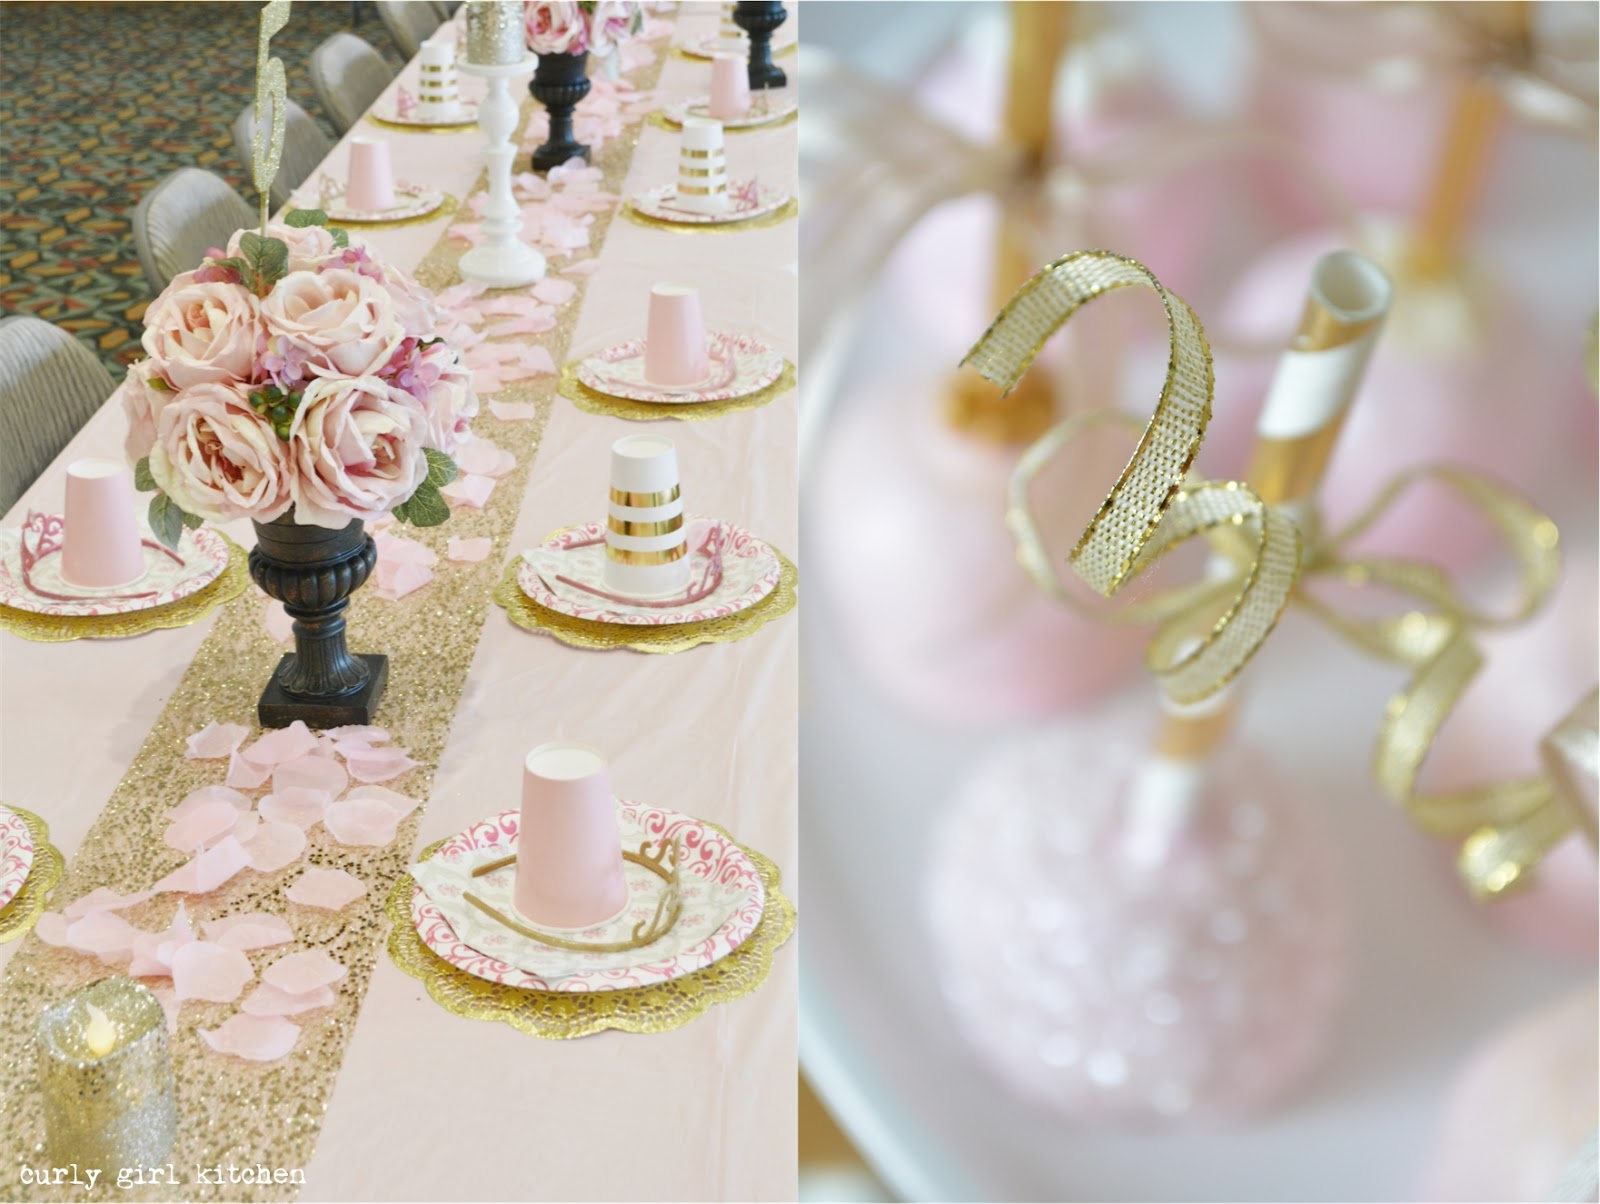 Curly Girl Kitchen Pink And Gold Princess Party Cake